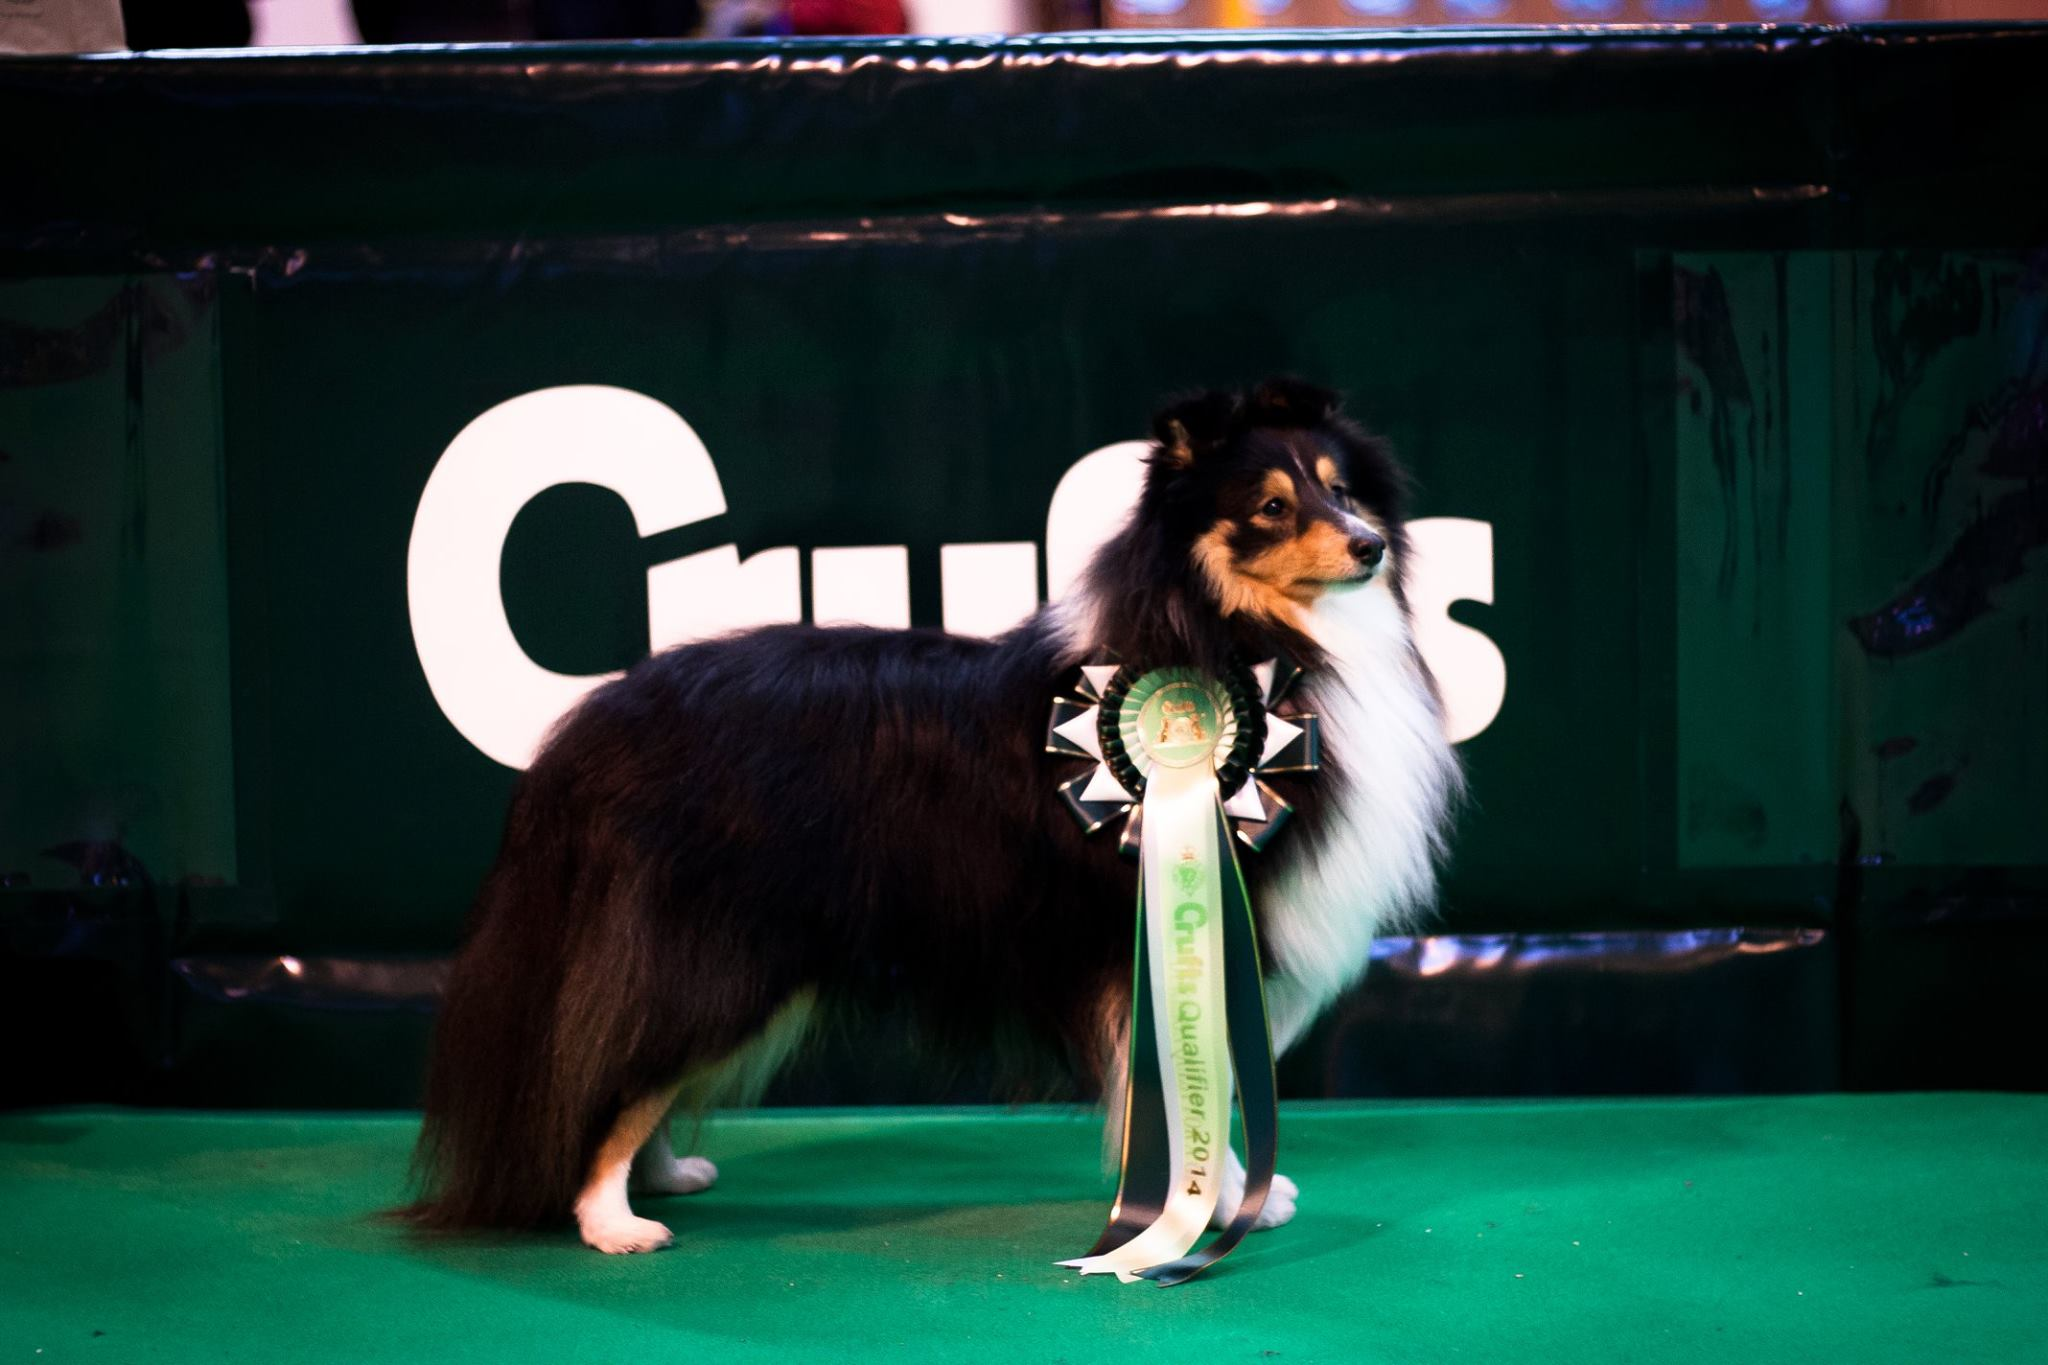 Our trip to Crufts